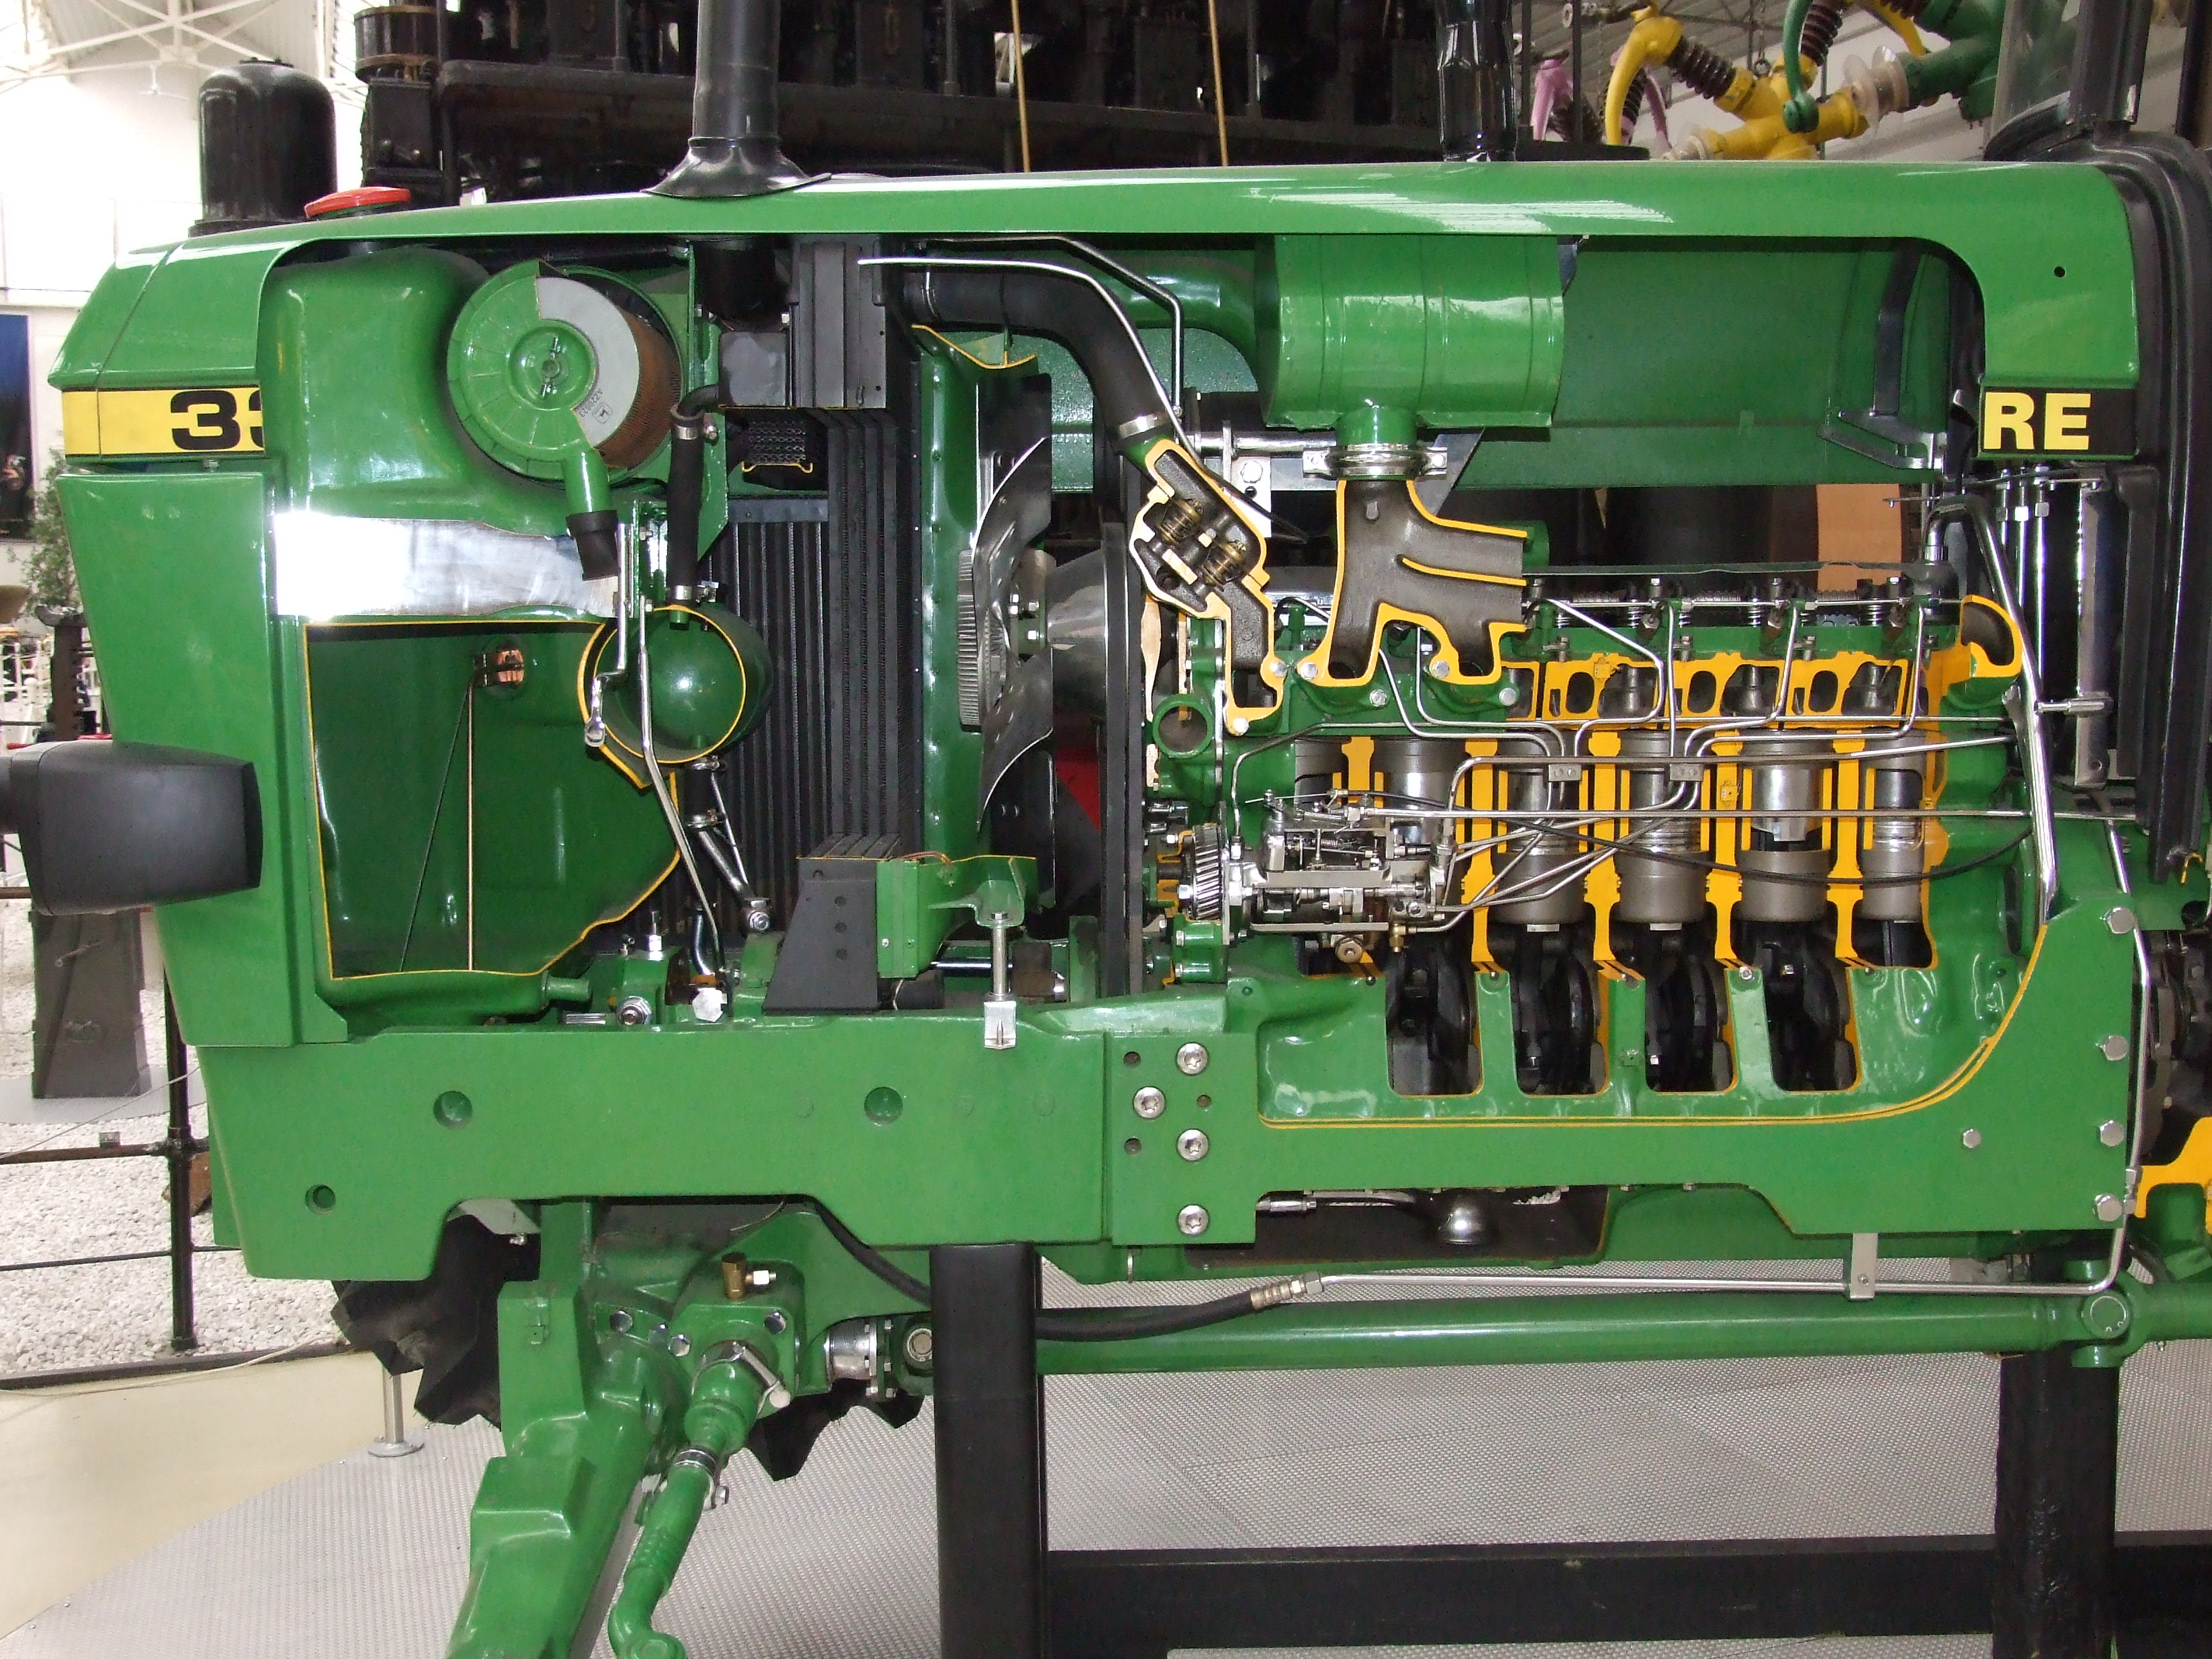 John Deere Engines : File john deere tractor cut engine g